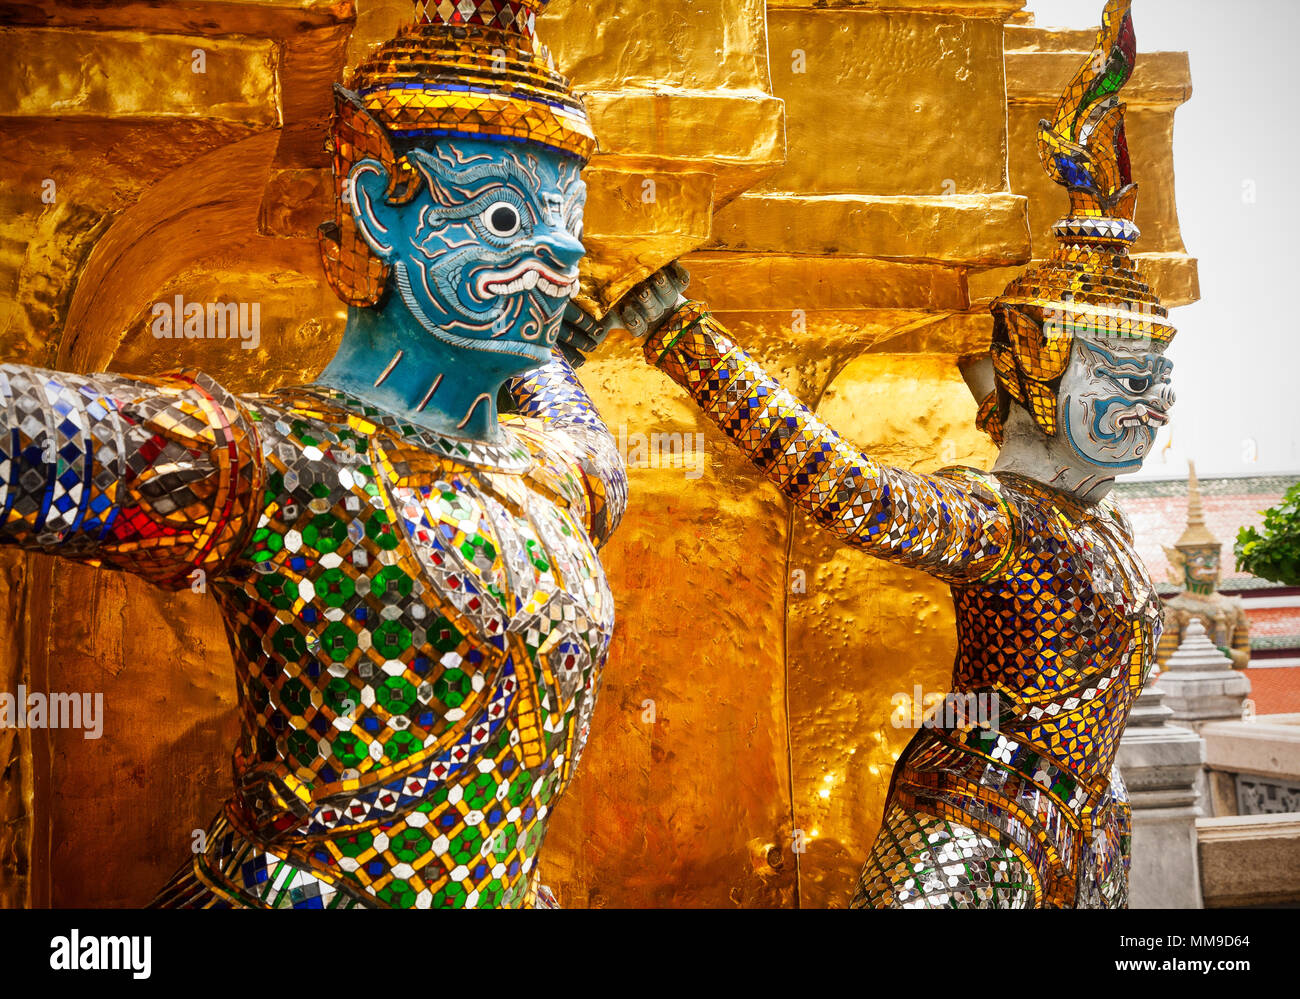 Scary looking characters ward away demons on the grounds of the Grand Palace.  Bangkok, Thailand. - Stock Image